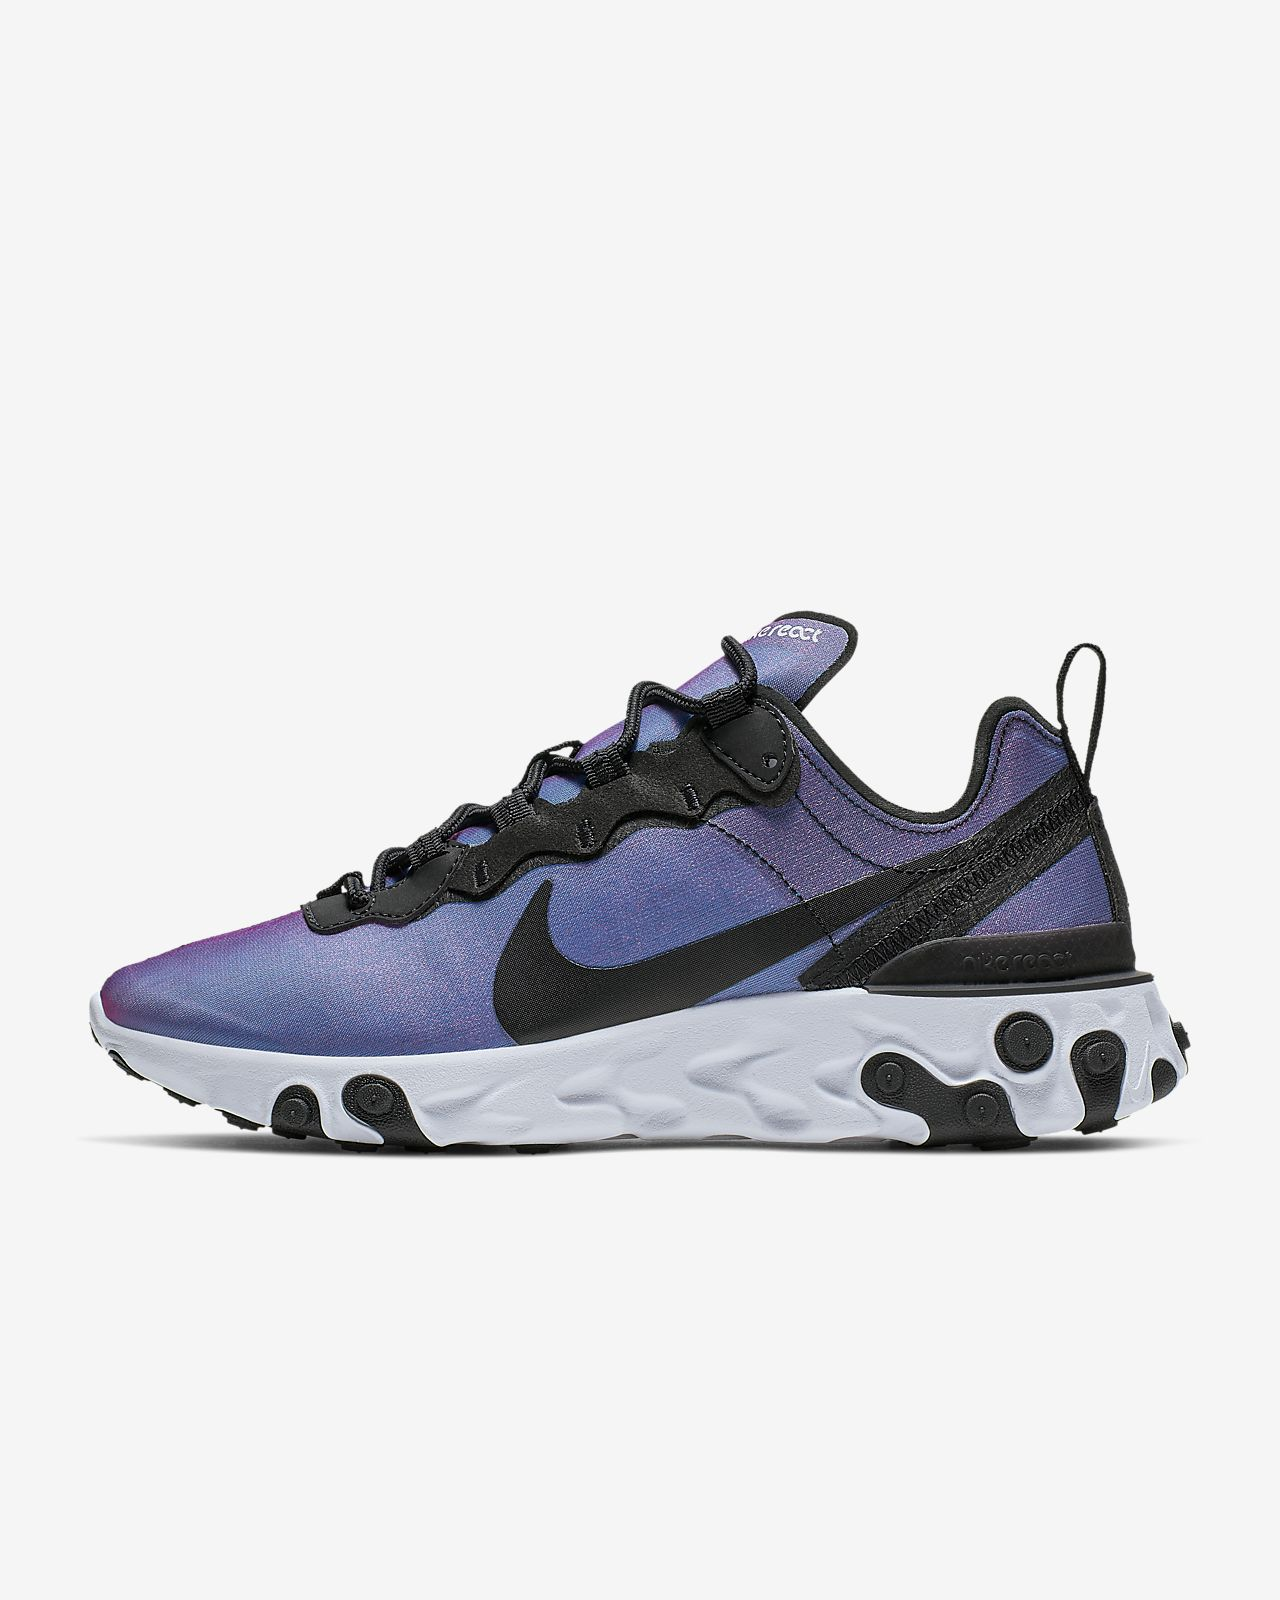 Nike React Element 55 Premium Damenschuh